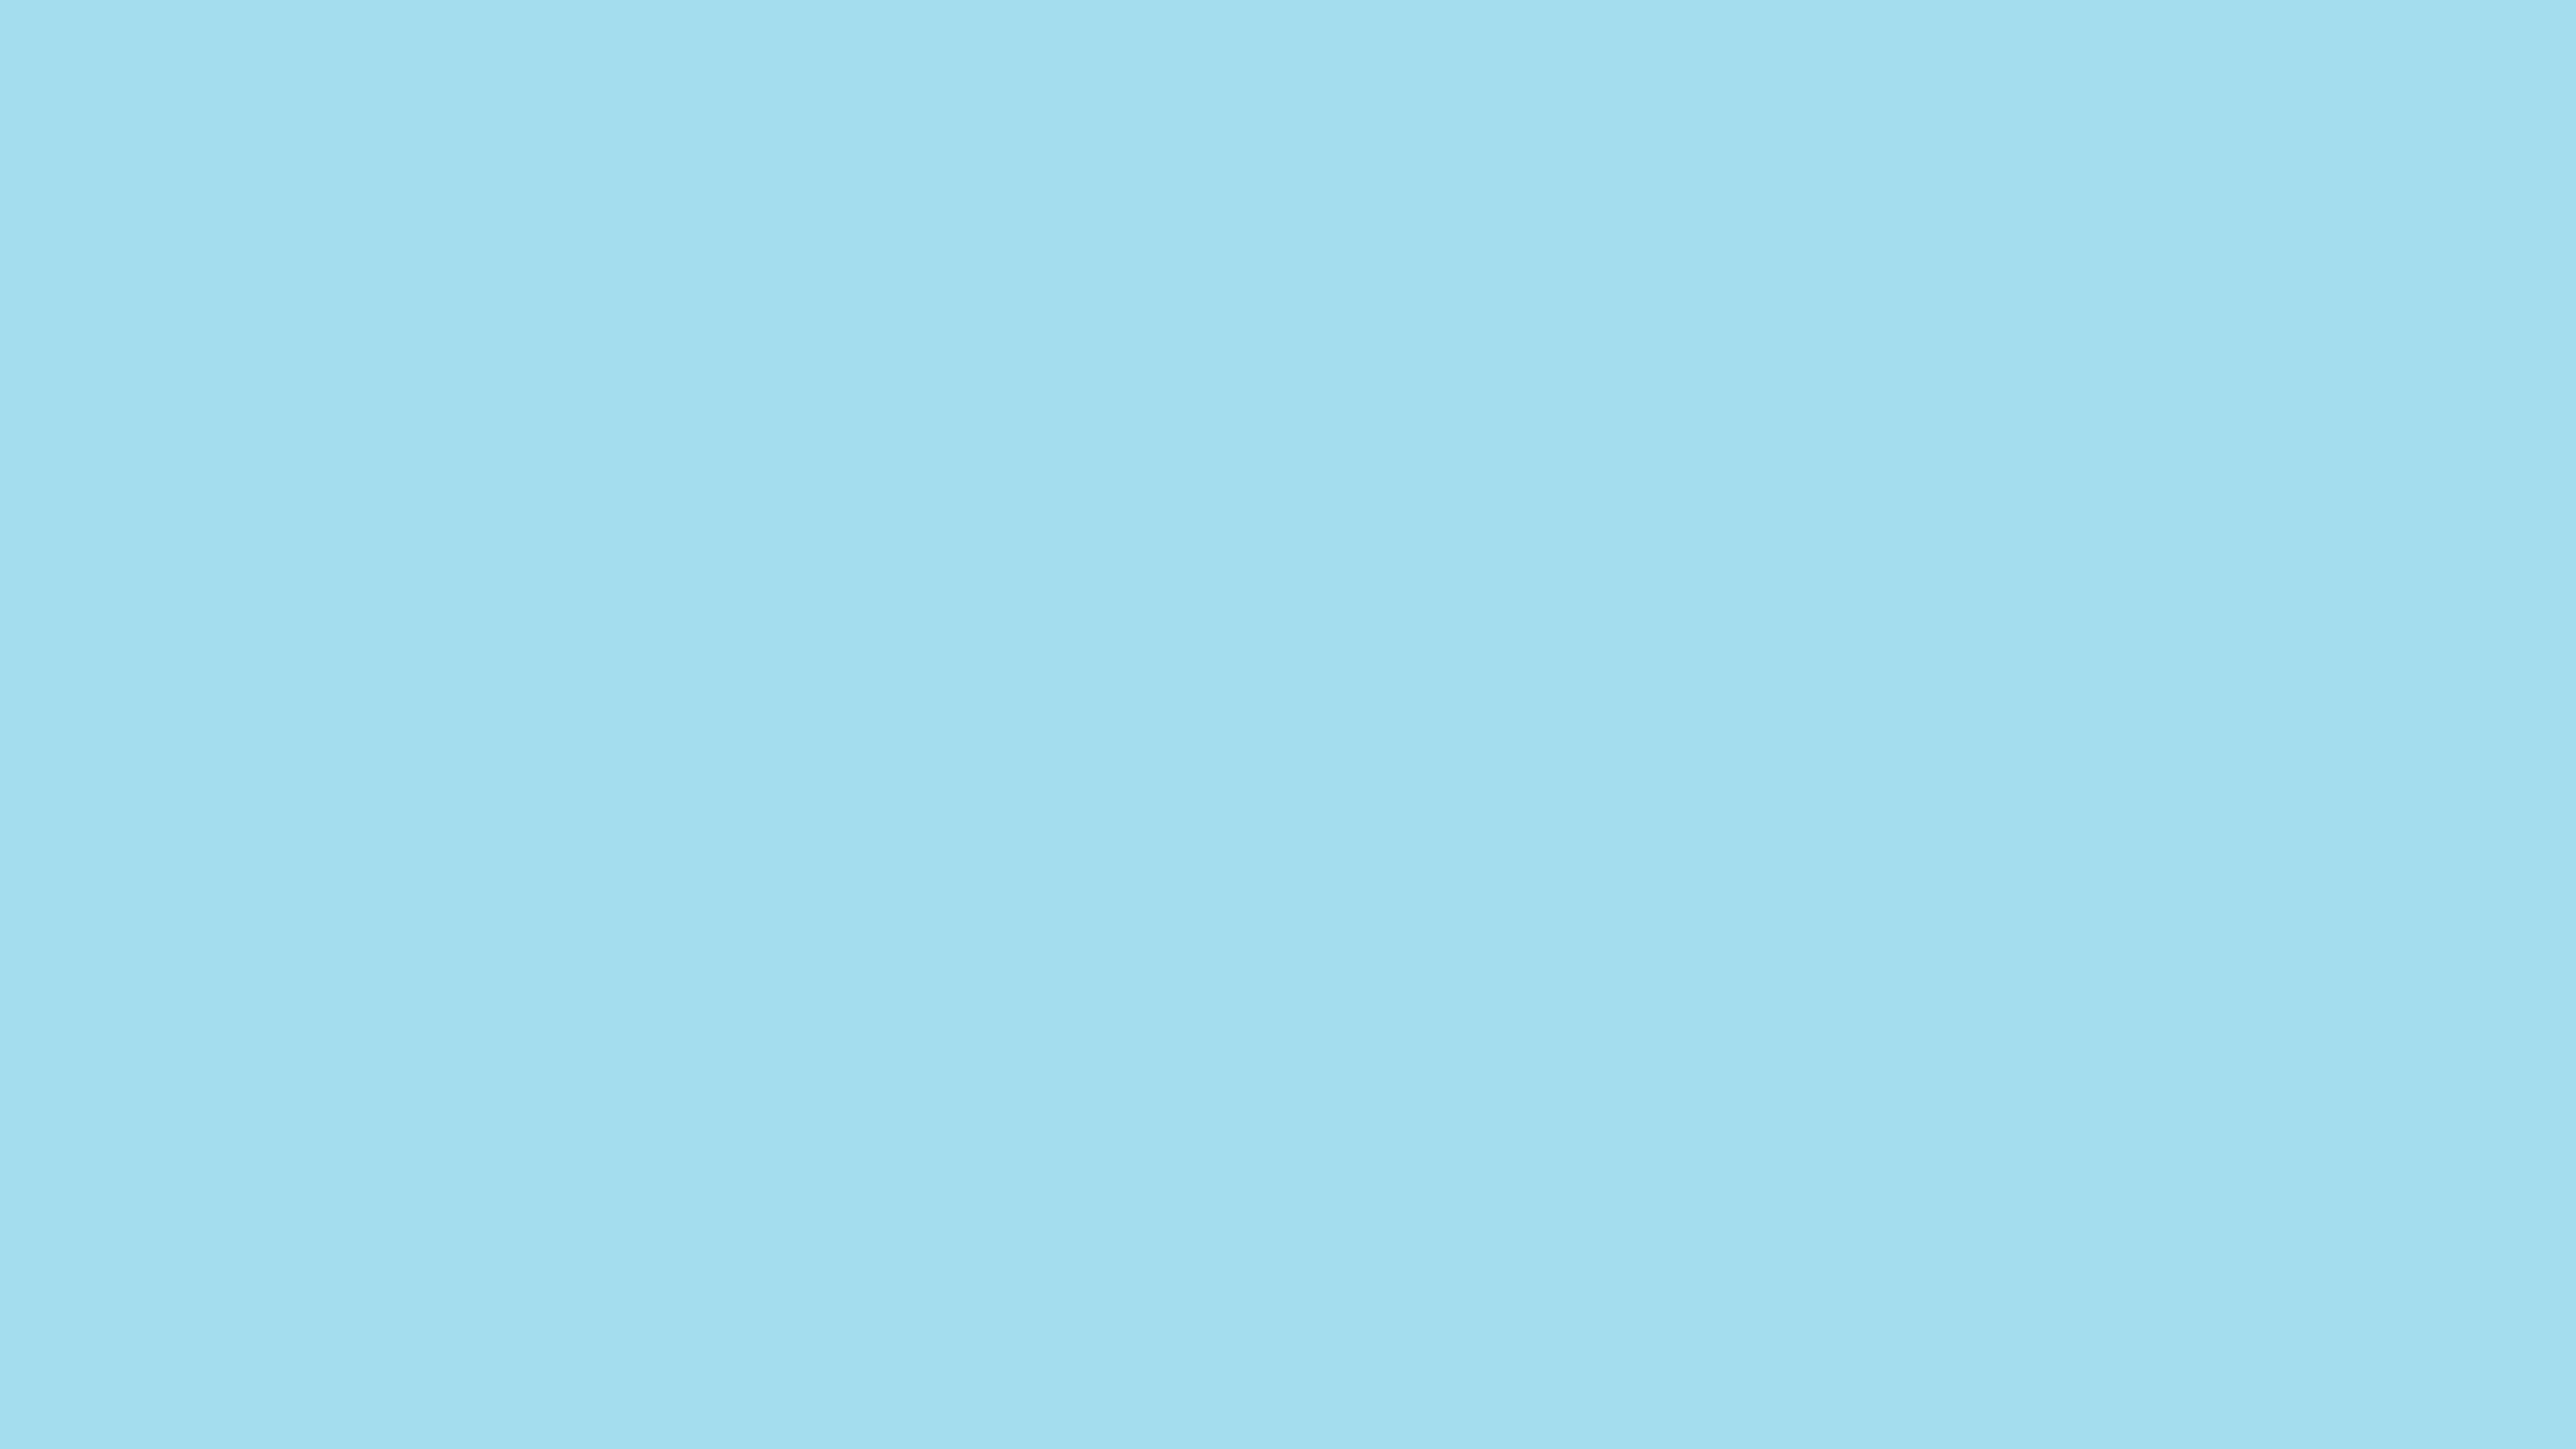 7680x4320 Non-photo Blue Solid Color Background